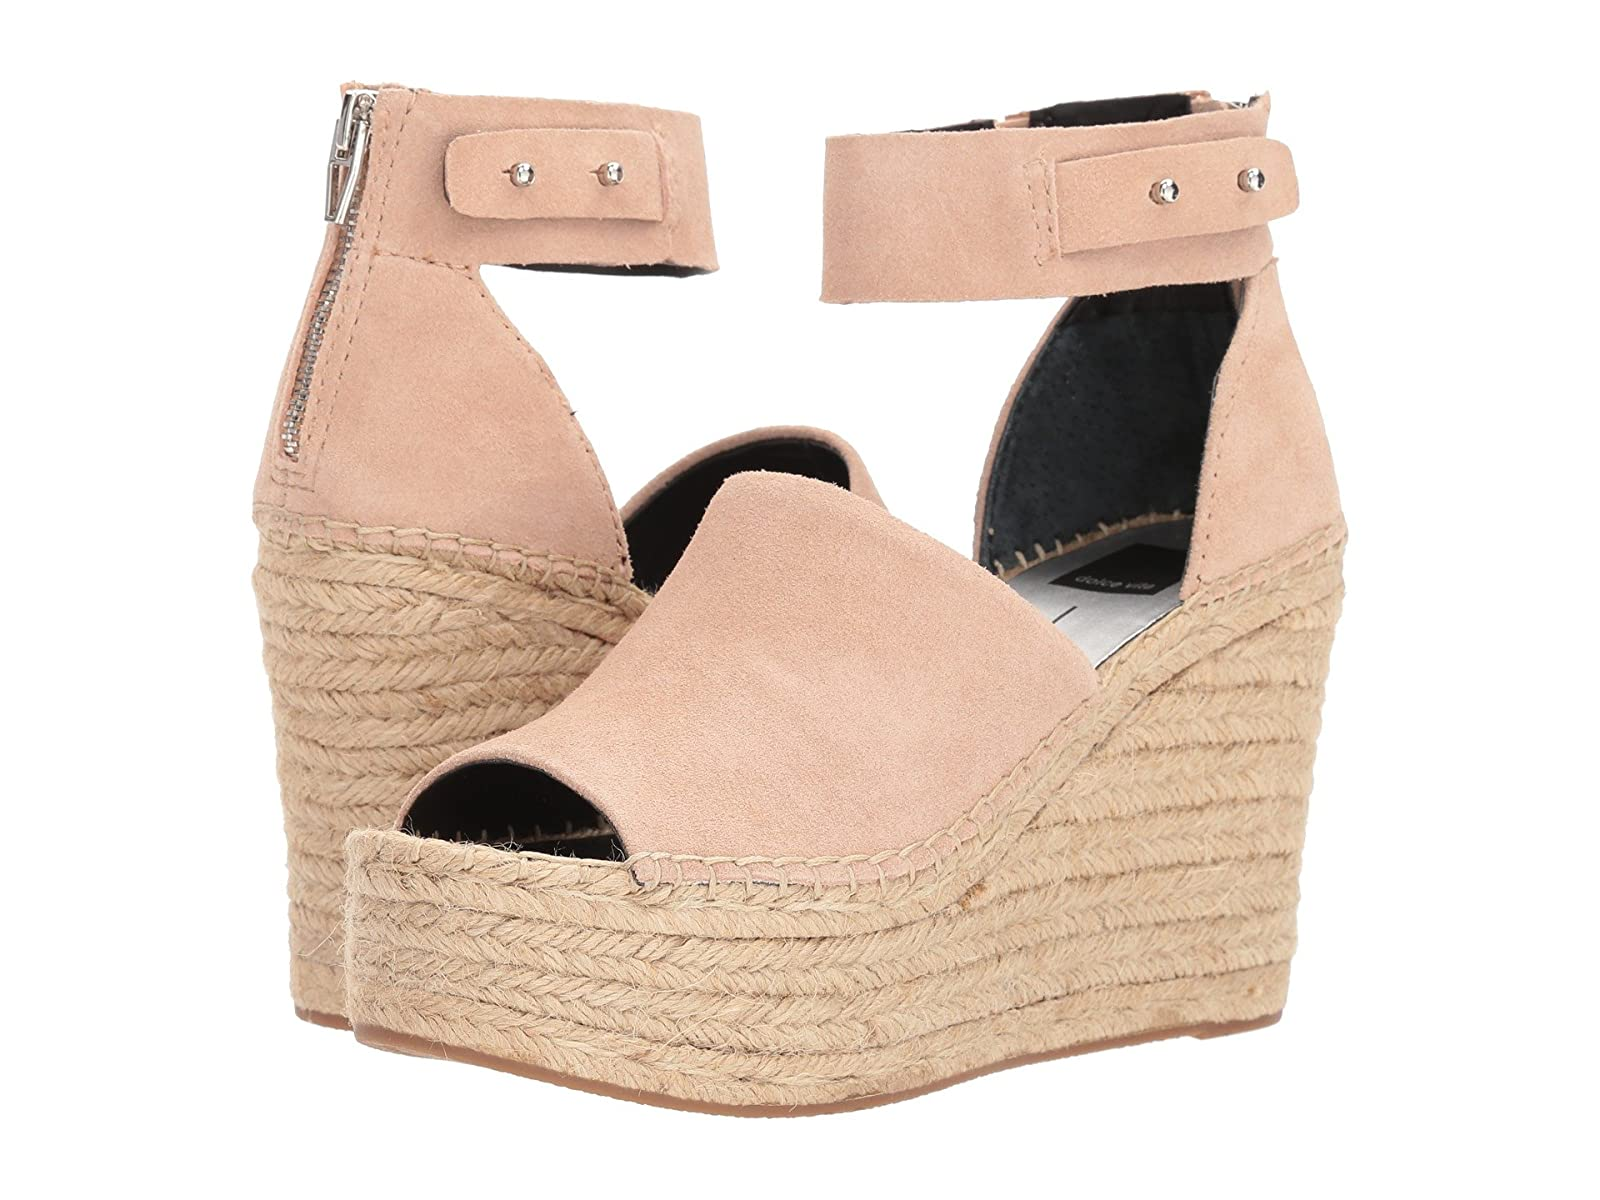 Dolce Vita StrawAtmospheric grades have affordable shoes